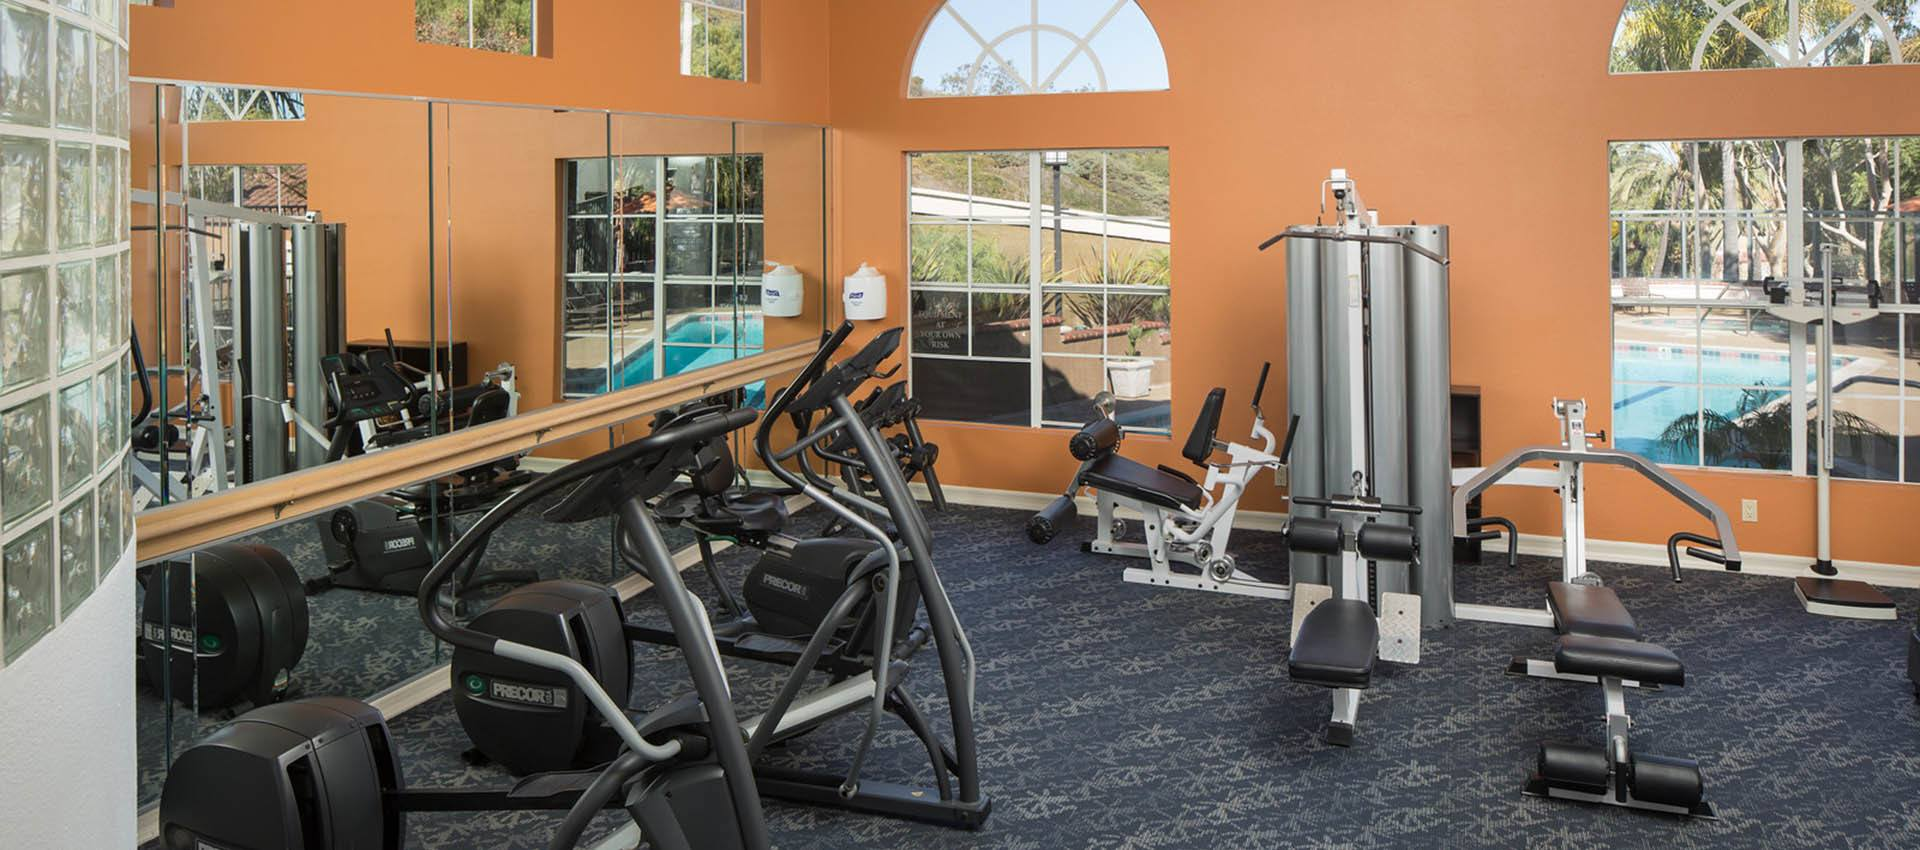 Fitness center at Niguel Summit Condominium Rentals in Laguna Niguel, California